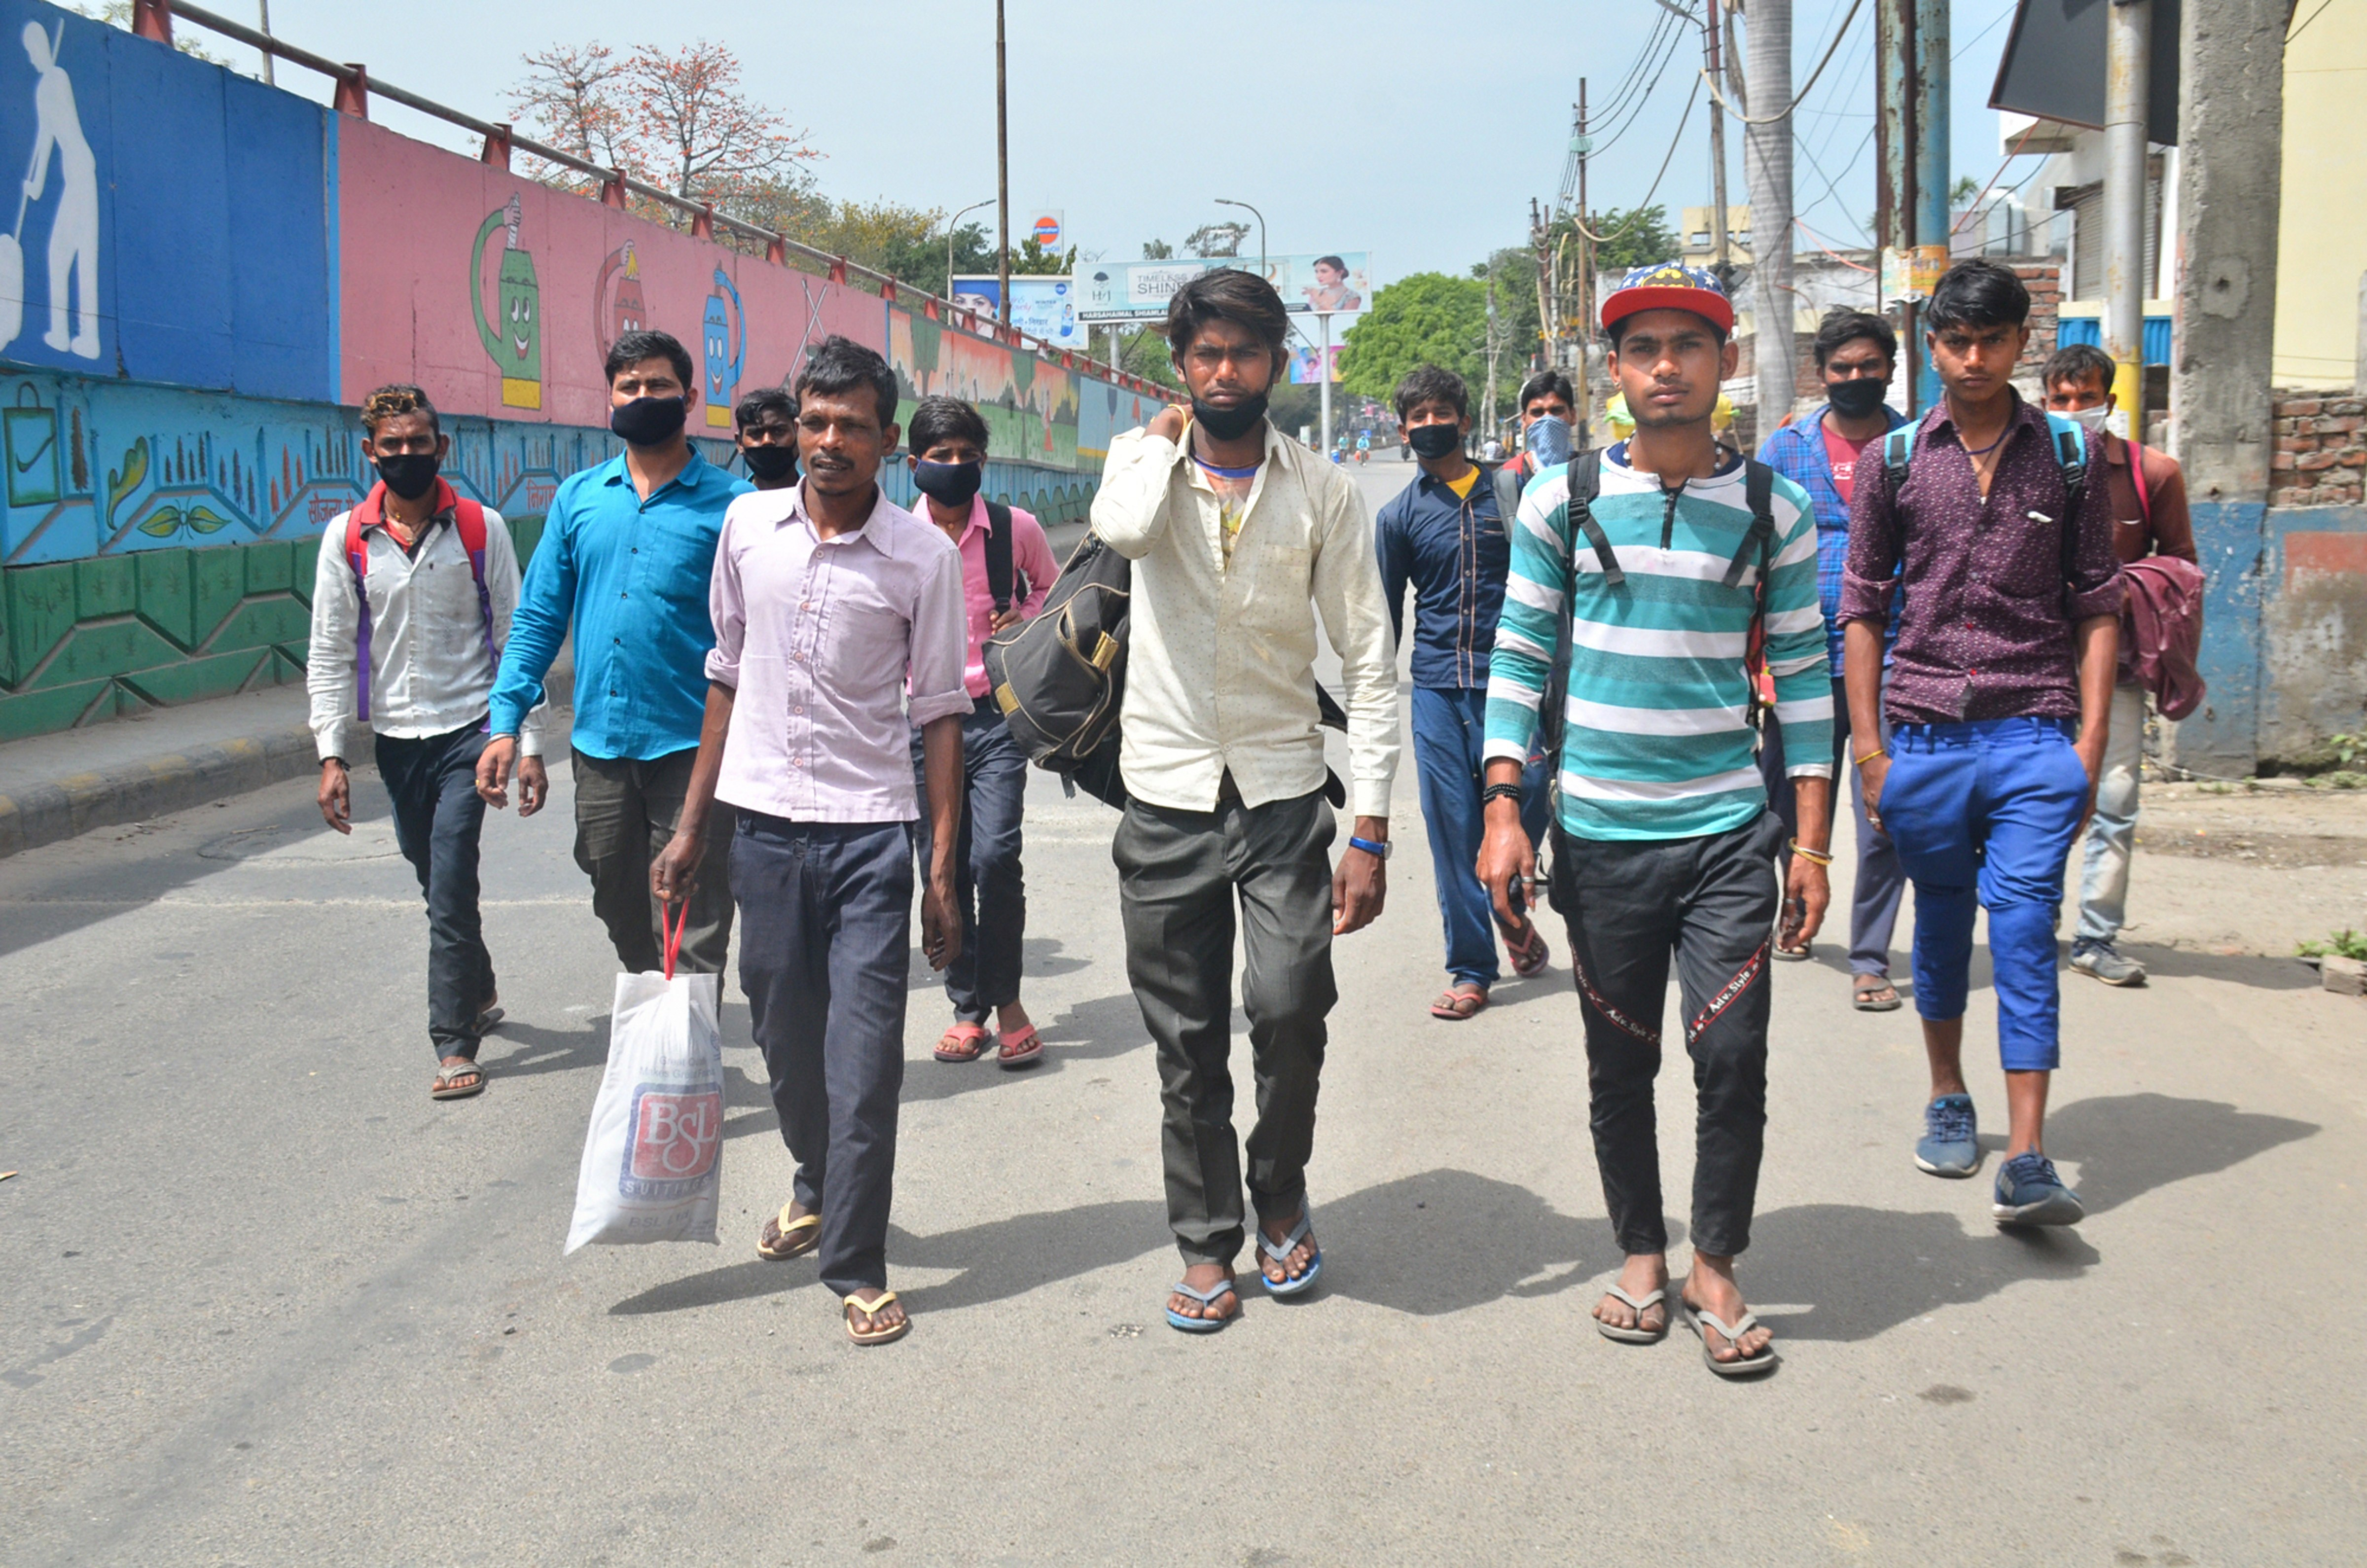 Migrant workers walk towards their home in Bareilly in the absence of any means of transportation, during day-2 of a nationwide lockdown imposed in the wake of coronavirus pandemic, in Moradabad, Thursday, March 26, 2020